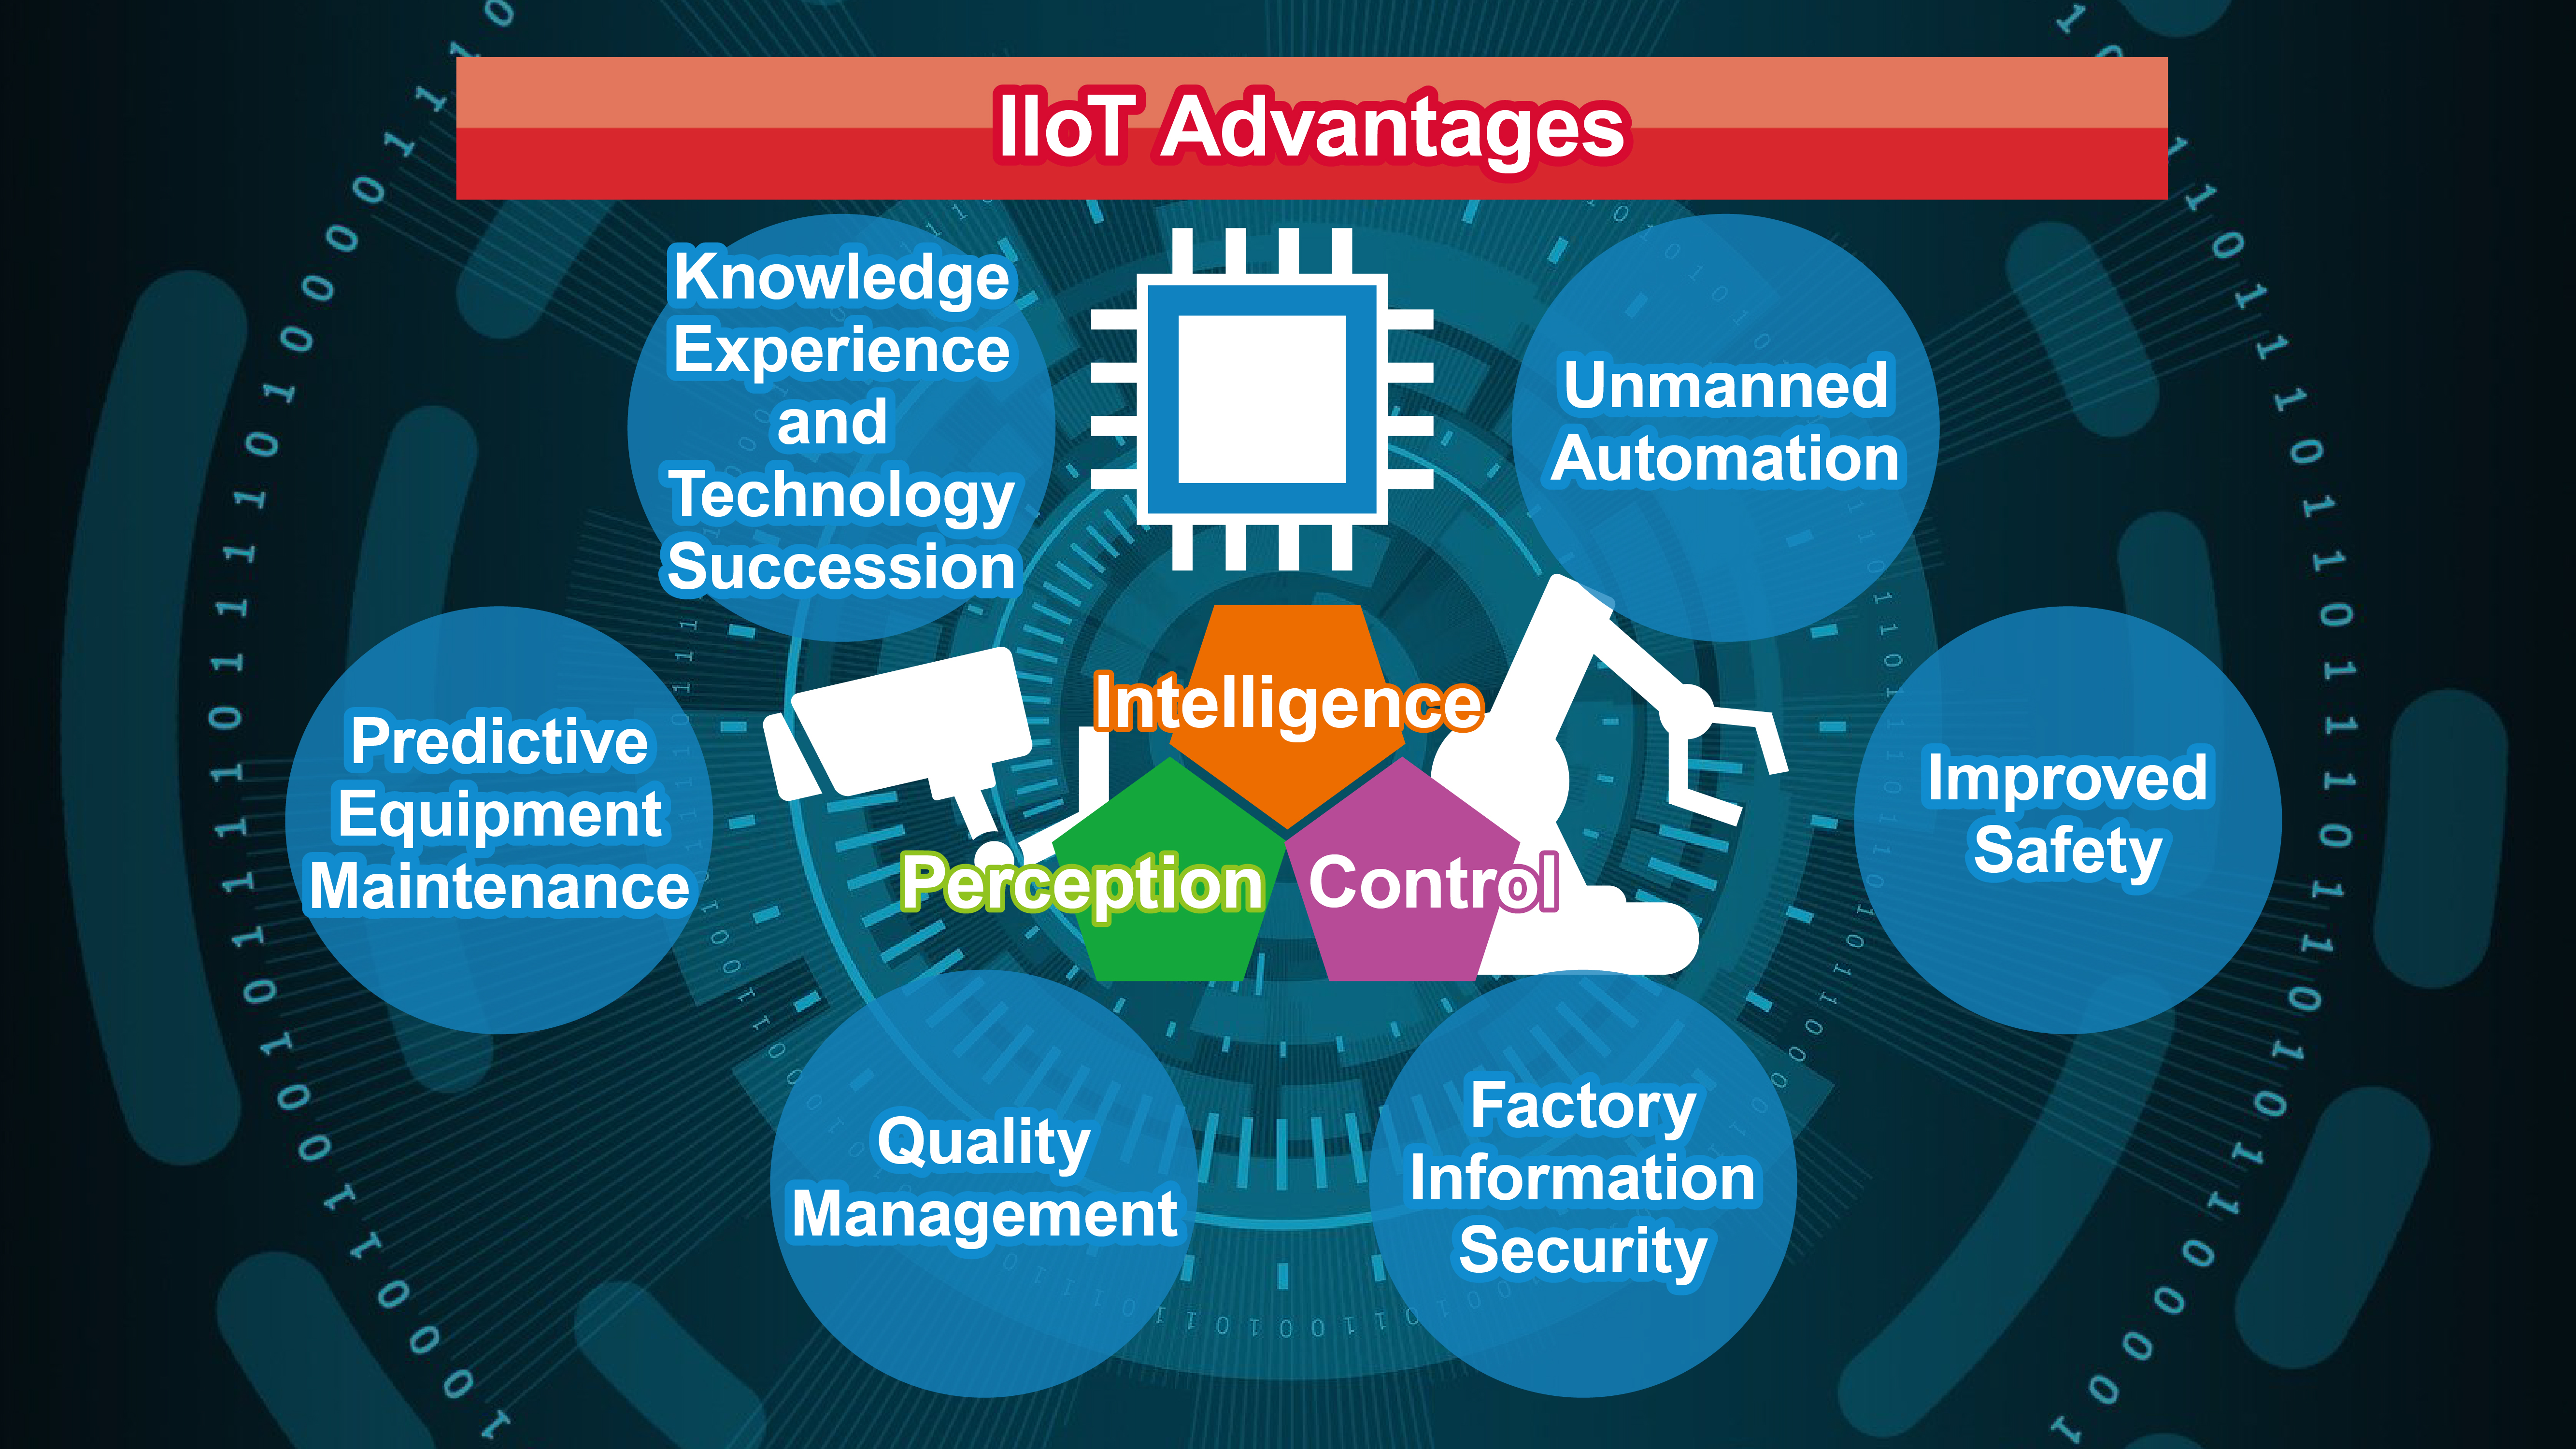 IIoT Advantages